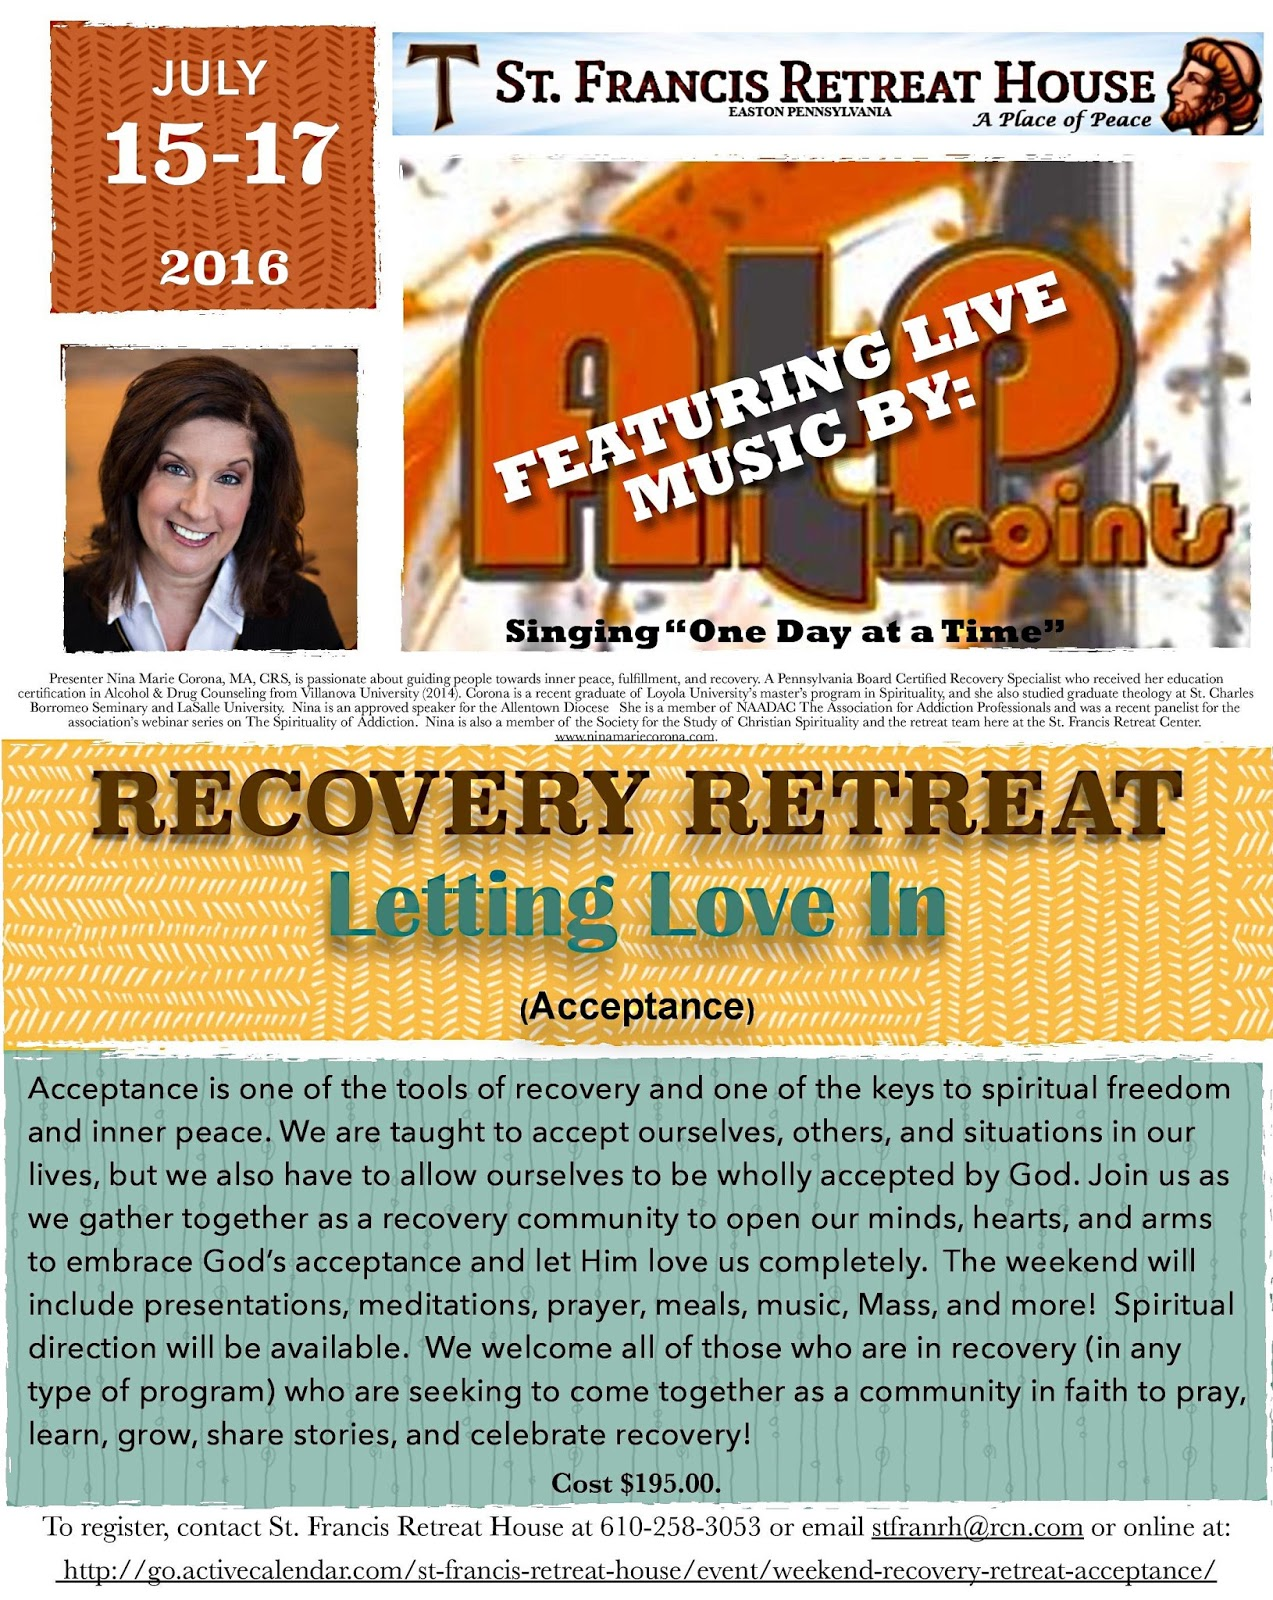 http://go.activecalendar.com/st-francis-retreat-house/event/weekend-recovery-retreat-acceptance/